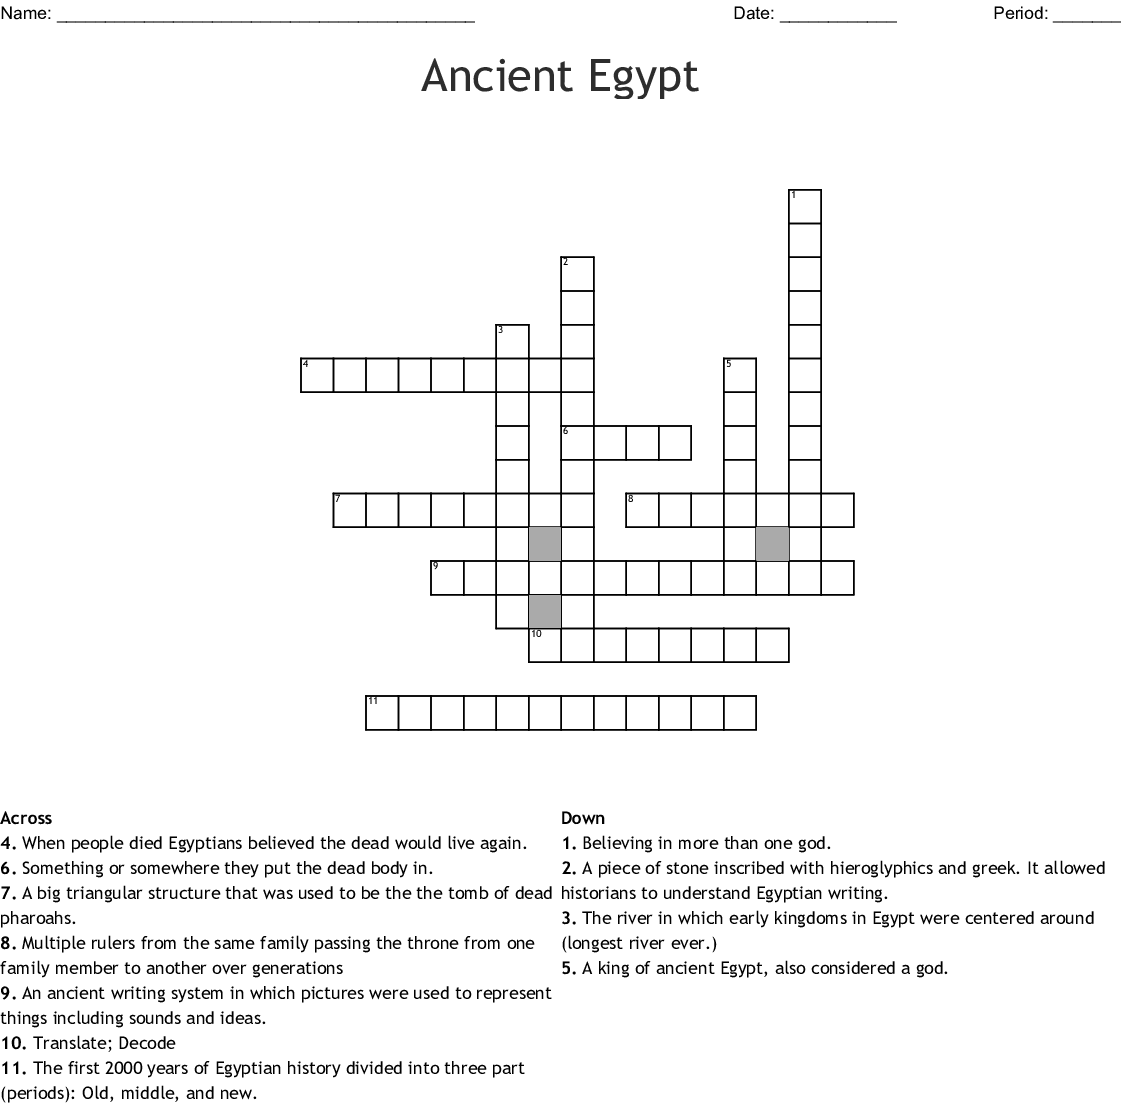 Egyptian Civilization Crossword - WordMint